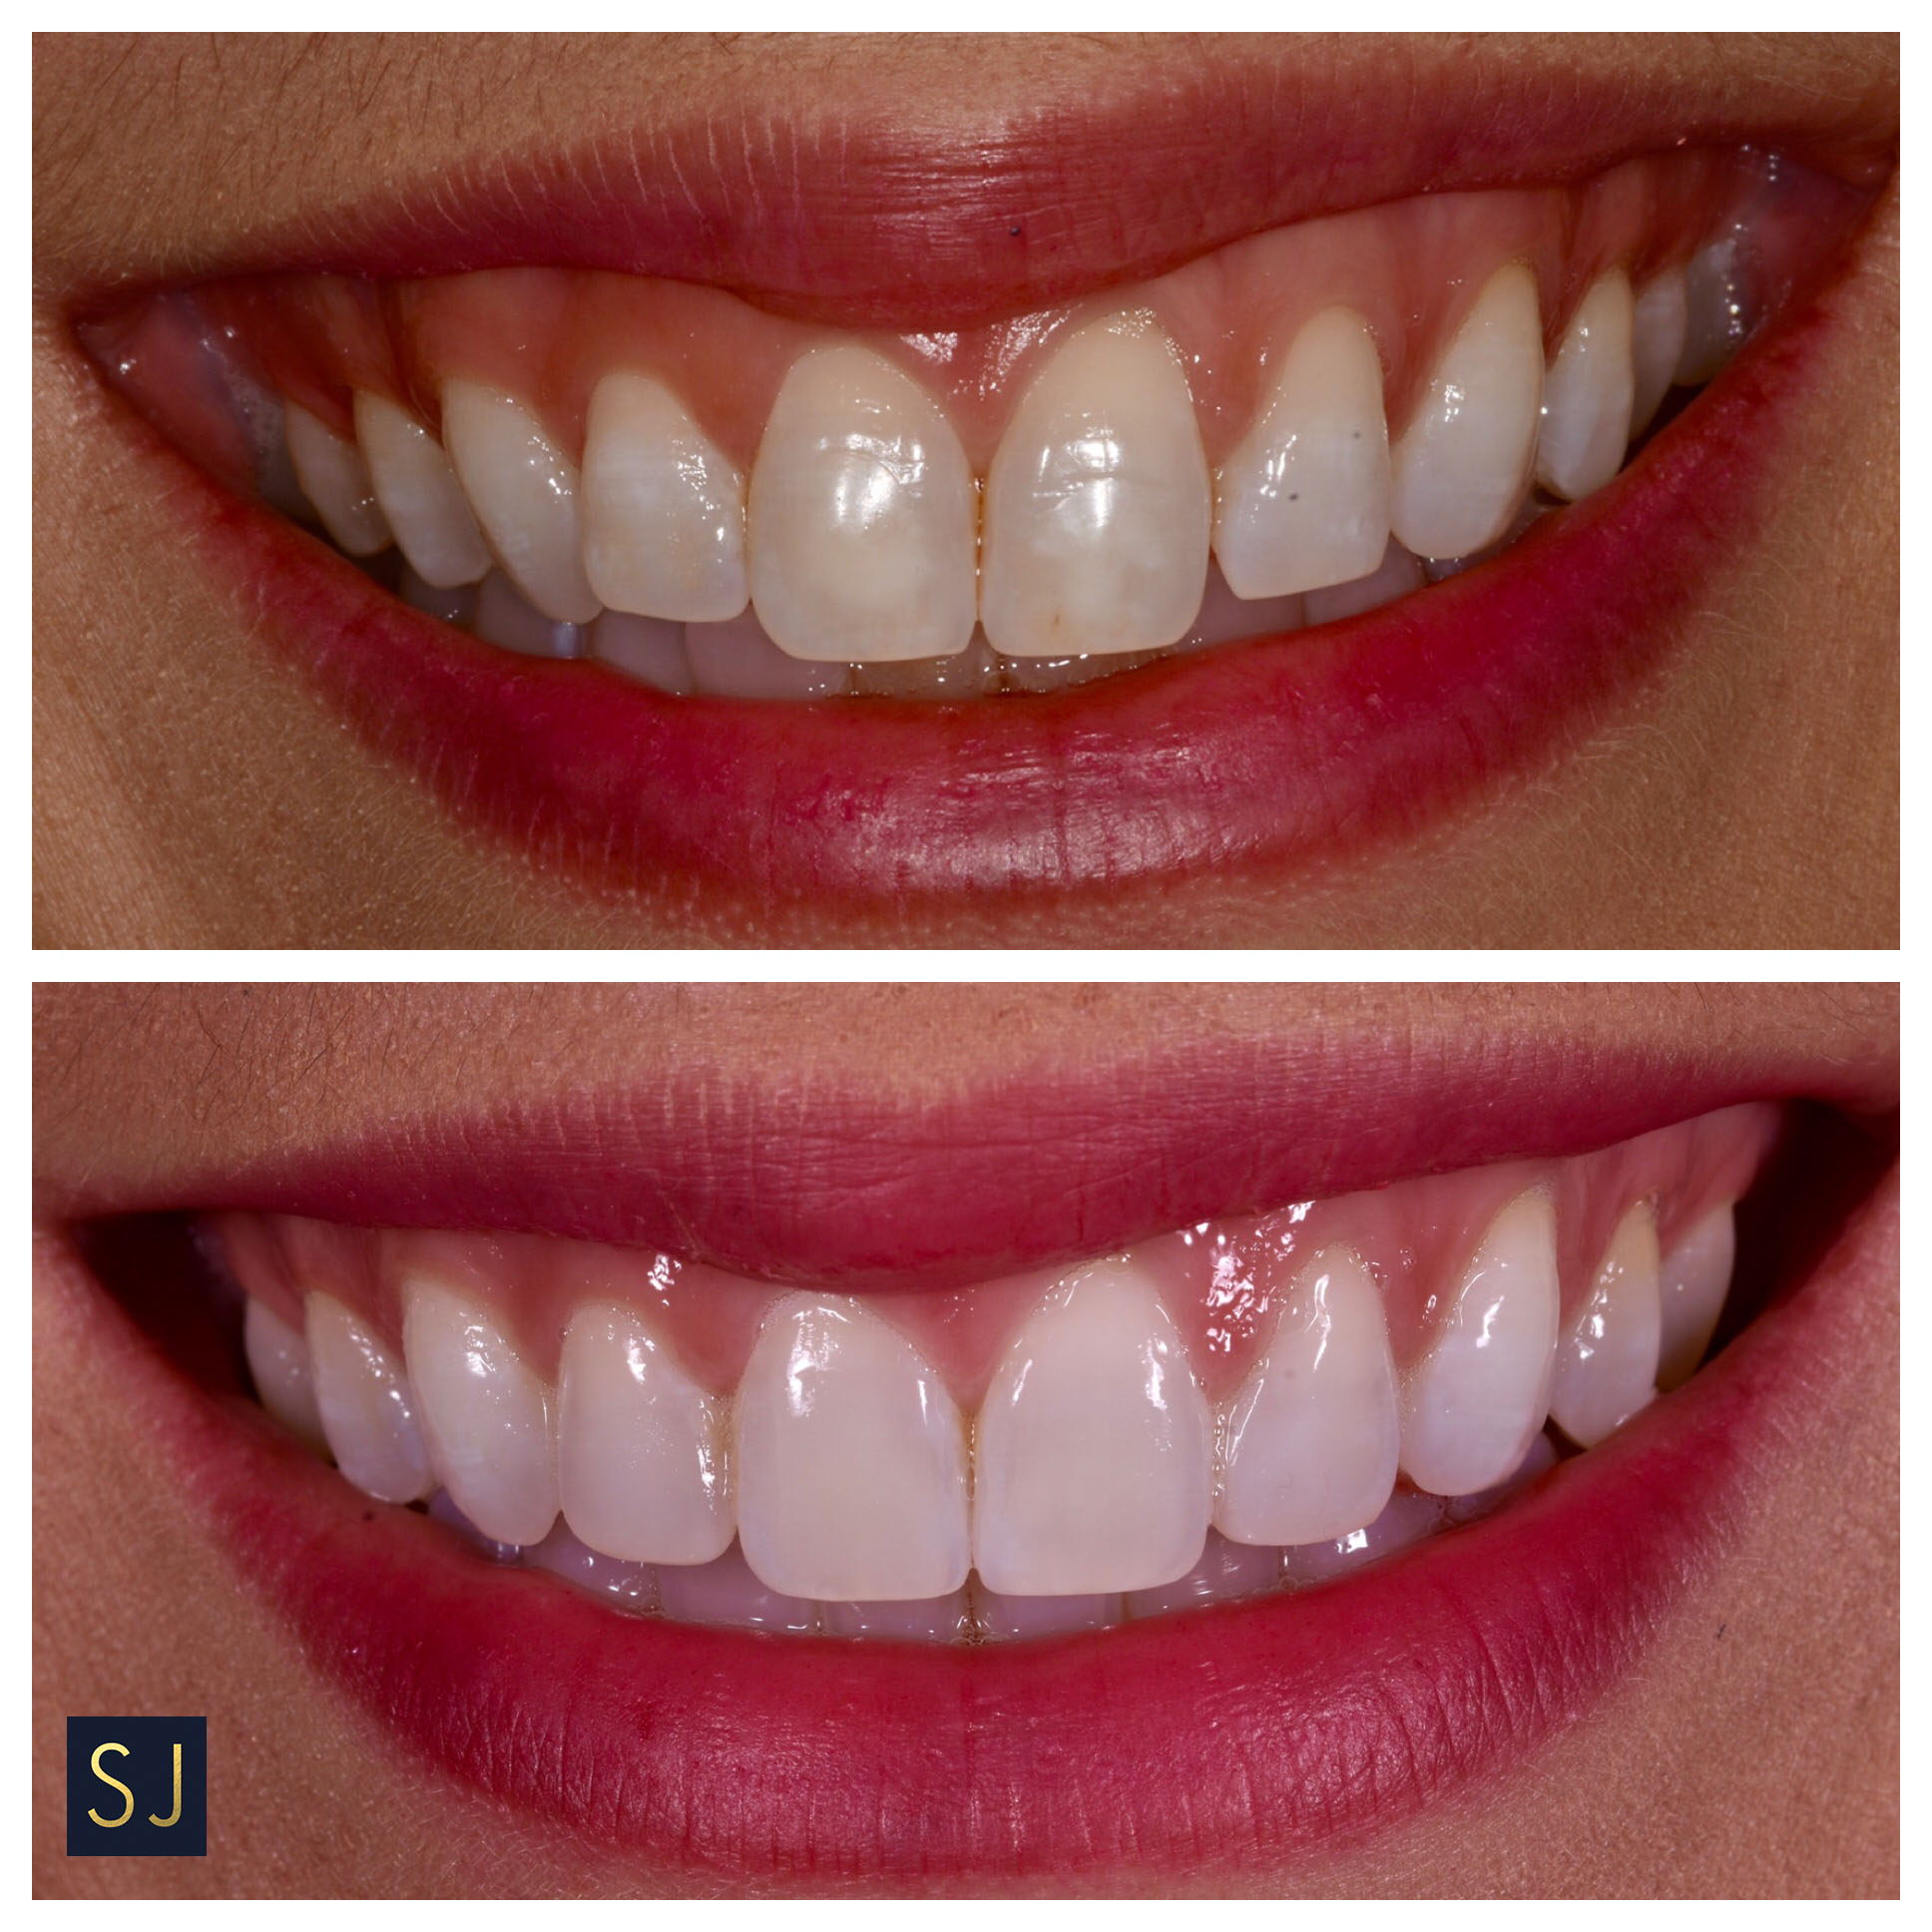 - This is another case where the patient was really unhappy with the spacing and canting of her smile. In a matter of 4 months we were able to align the teeth and whiten the teeth and enhance them with a little bit of bonding to give that overall 'wow' factor. Needless to say the patient is ecstatic with her image and her confidence has obviously increased tremendously.